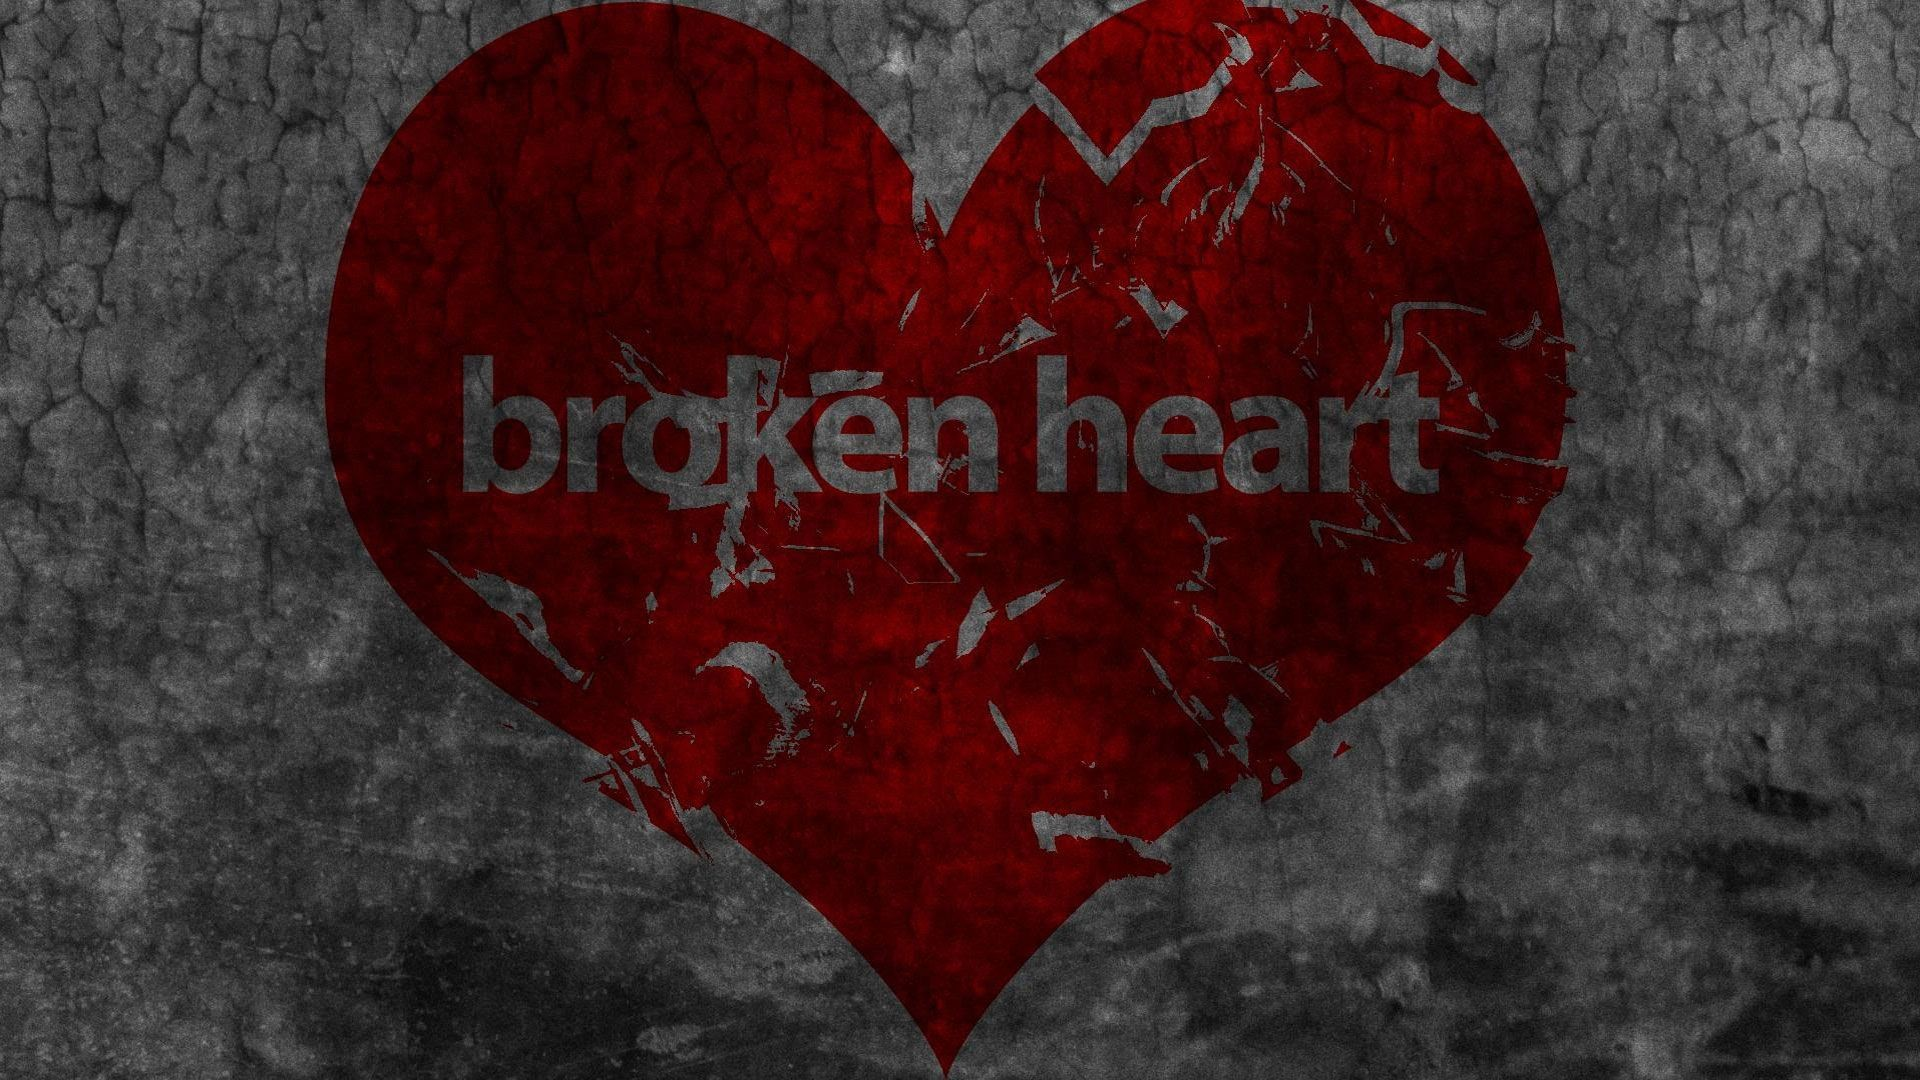 Heart Broken Wallpaper 64 Images